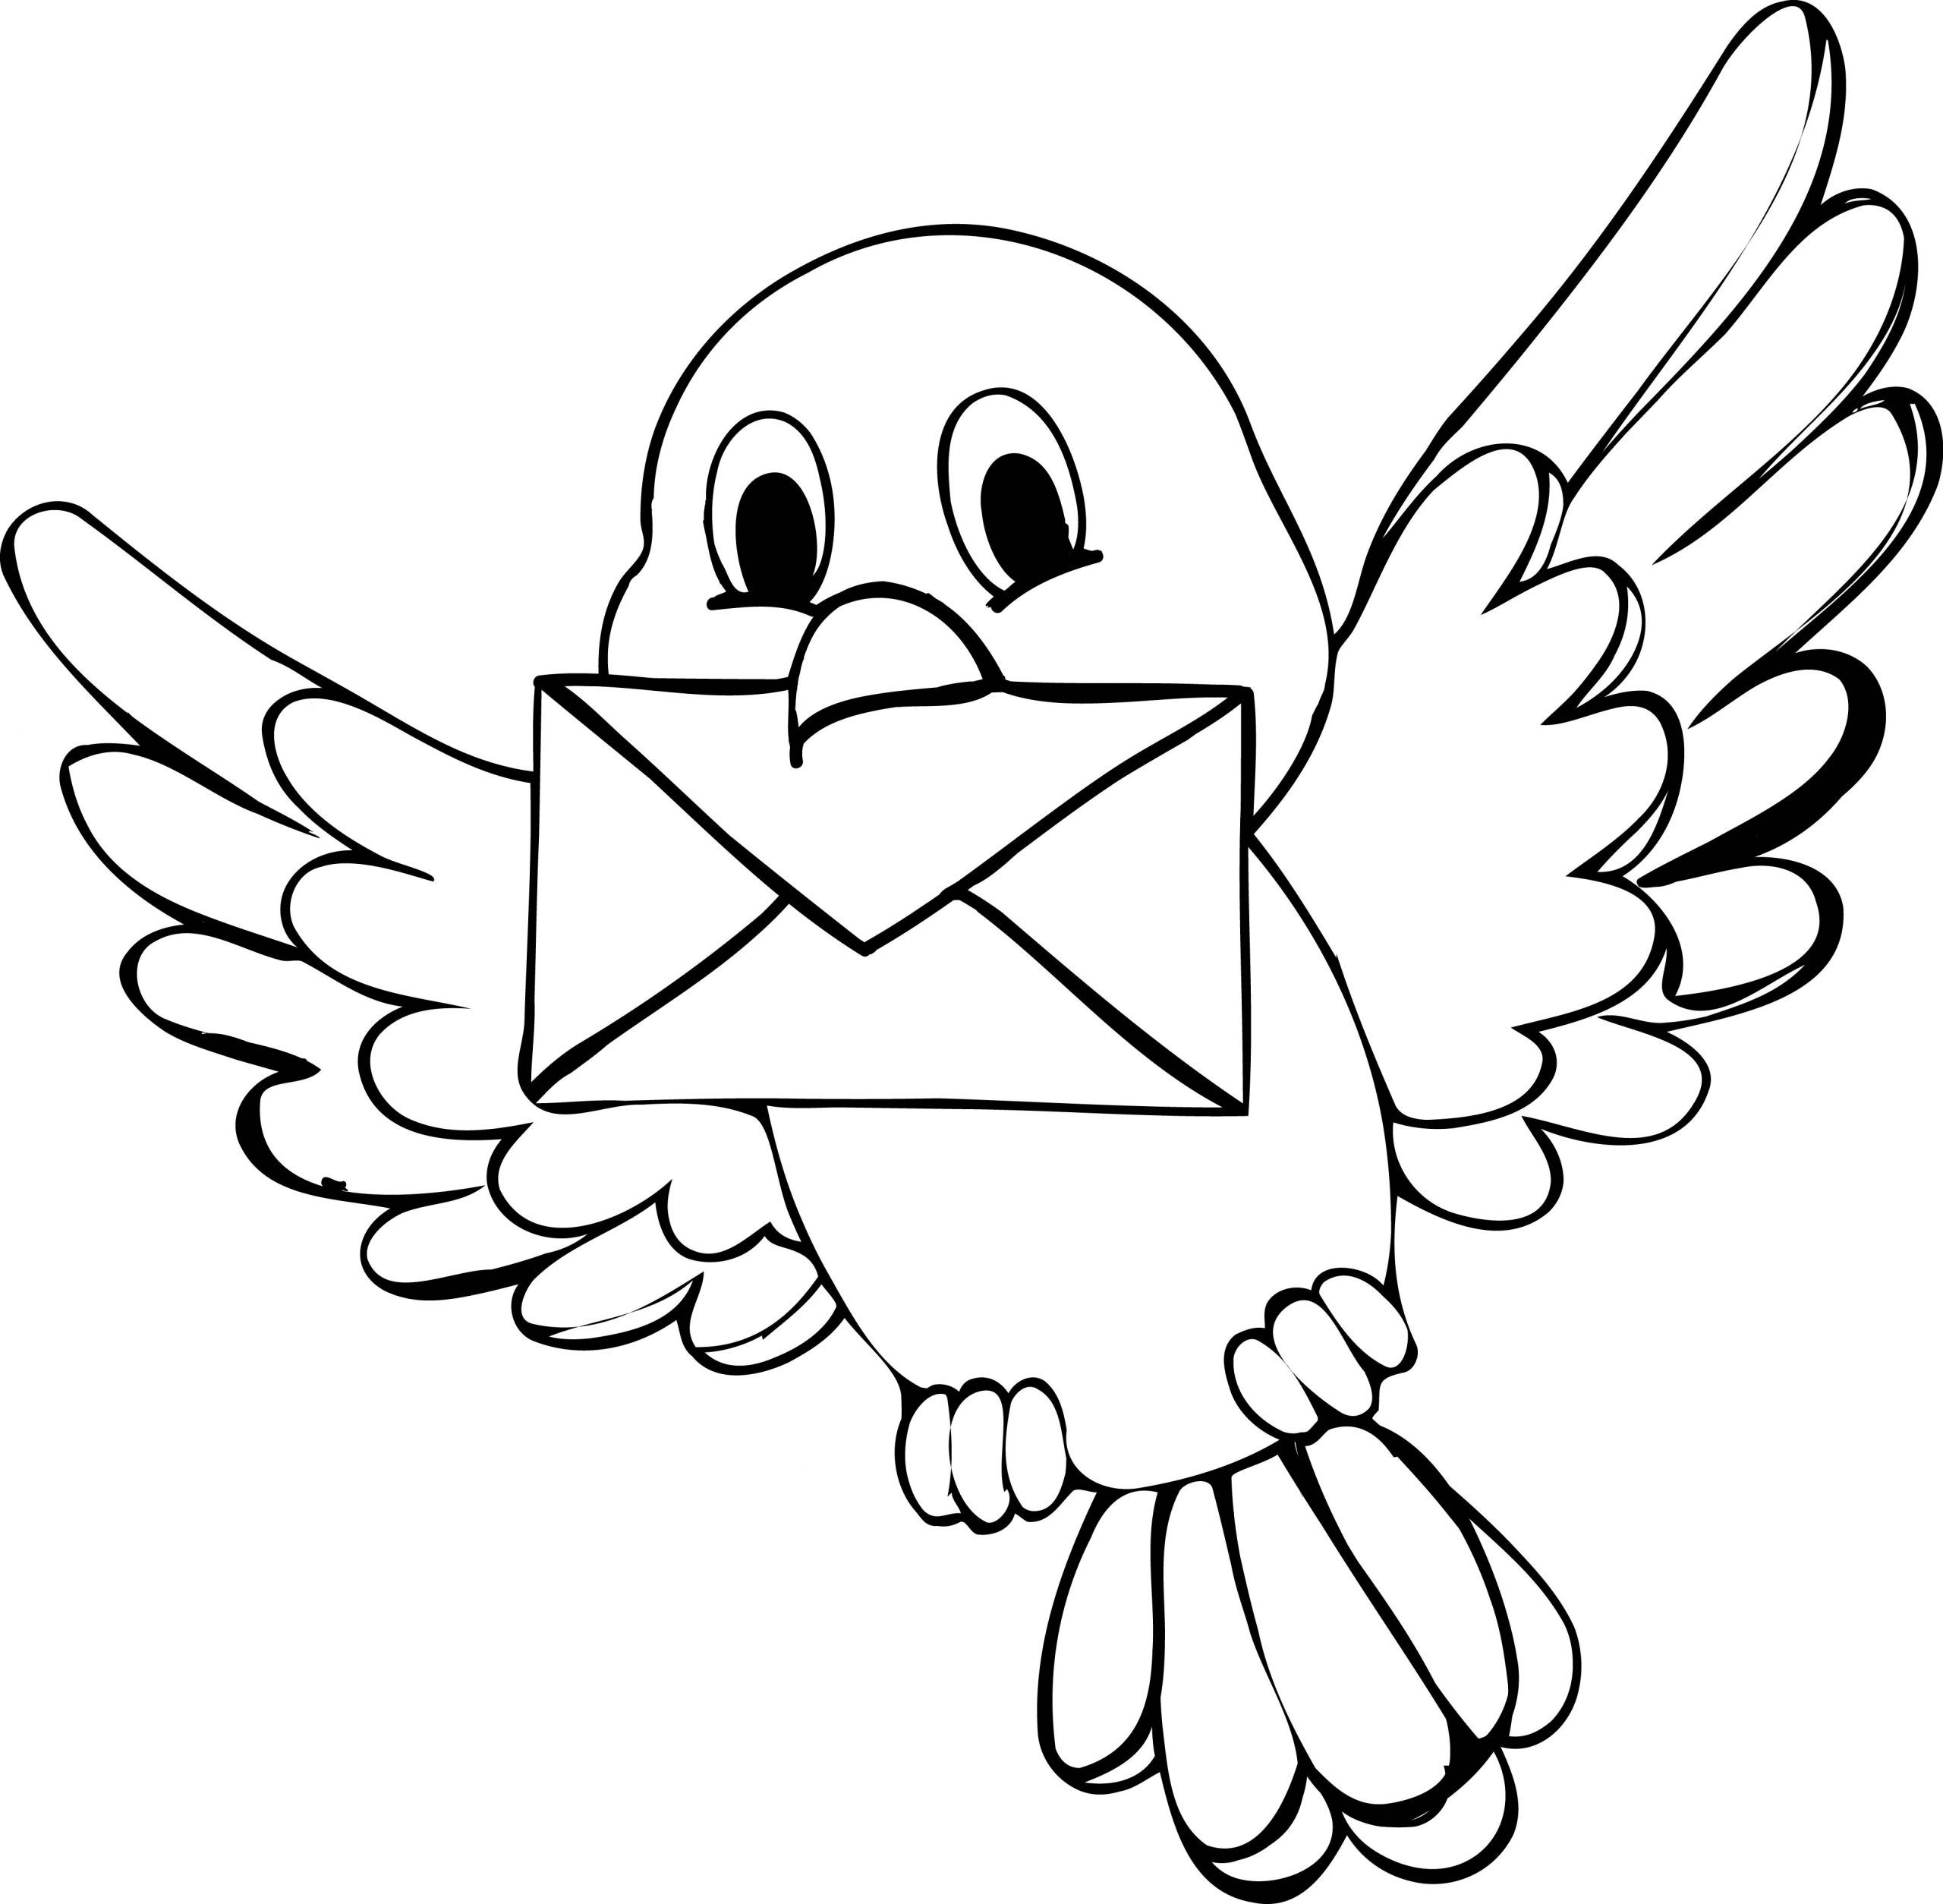 coloring pages for kids birds birds free to color for children birds kids coloring pages coloring kids pages birds for